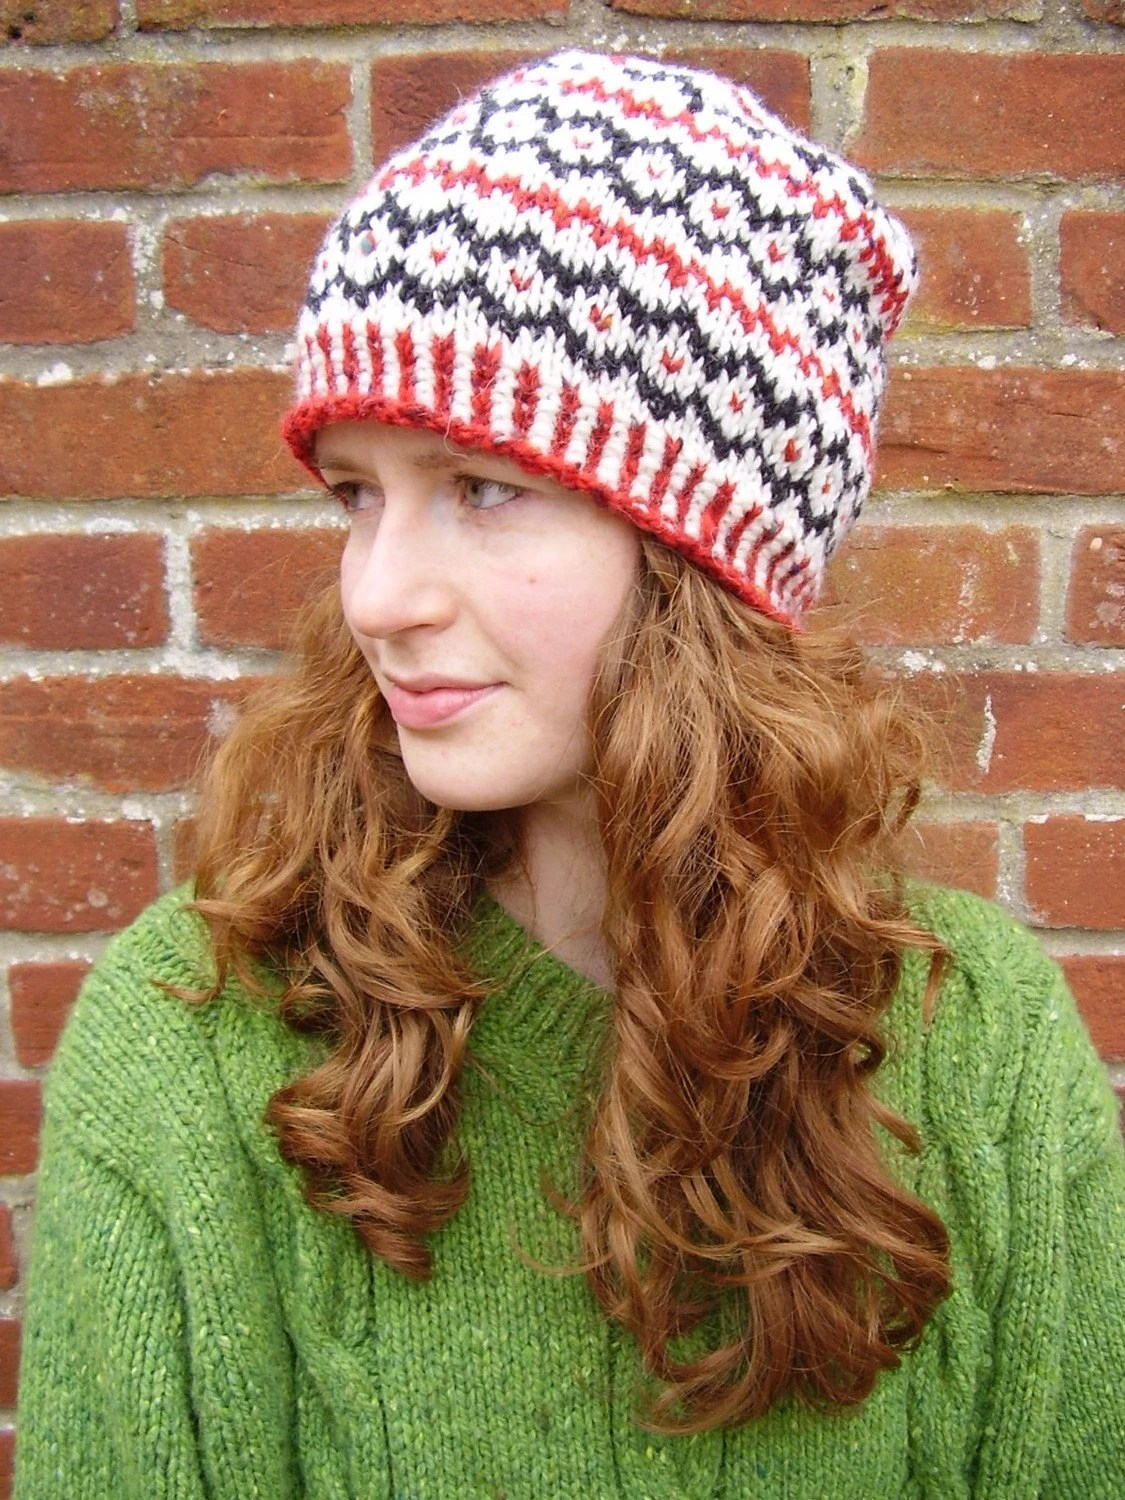 Handknit Fair Isle Donegal Aran Unisex Beanie (cream with black and scarlet red)